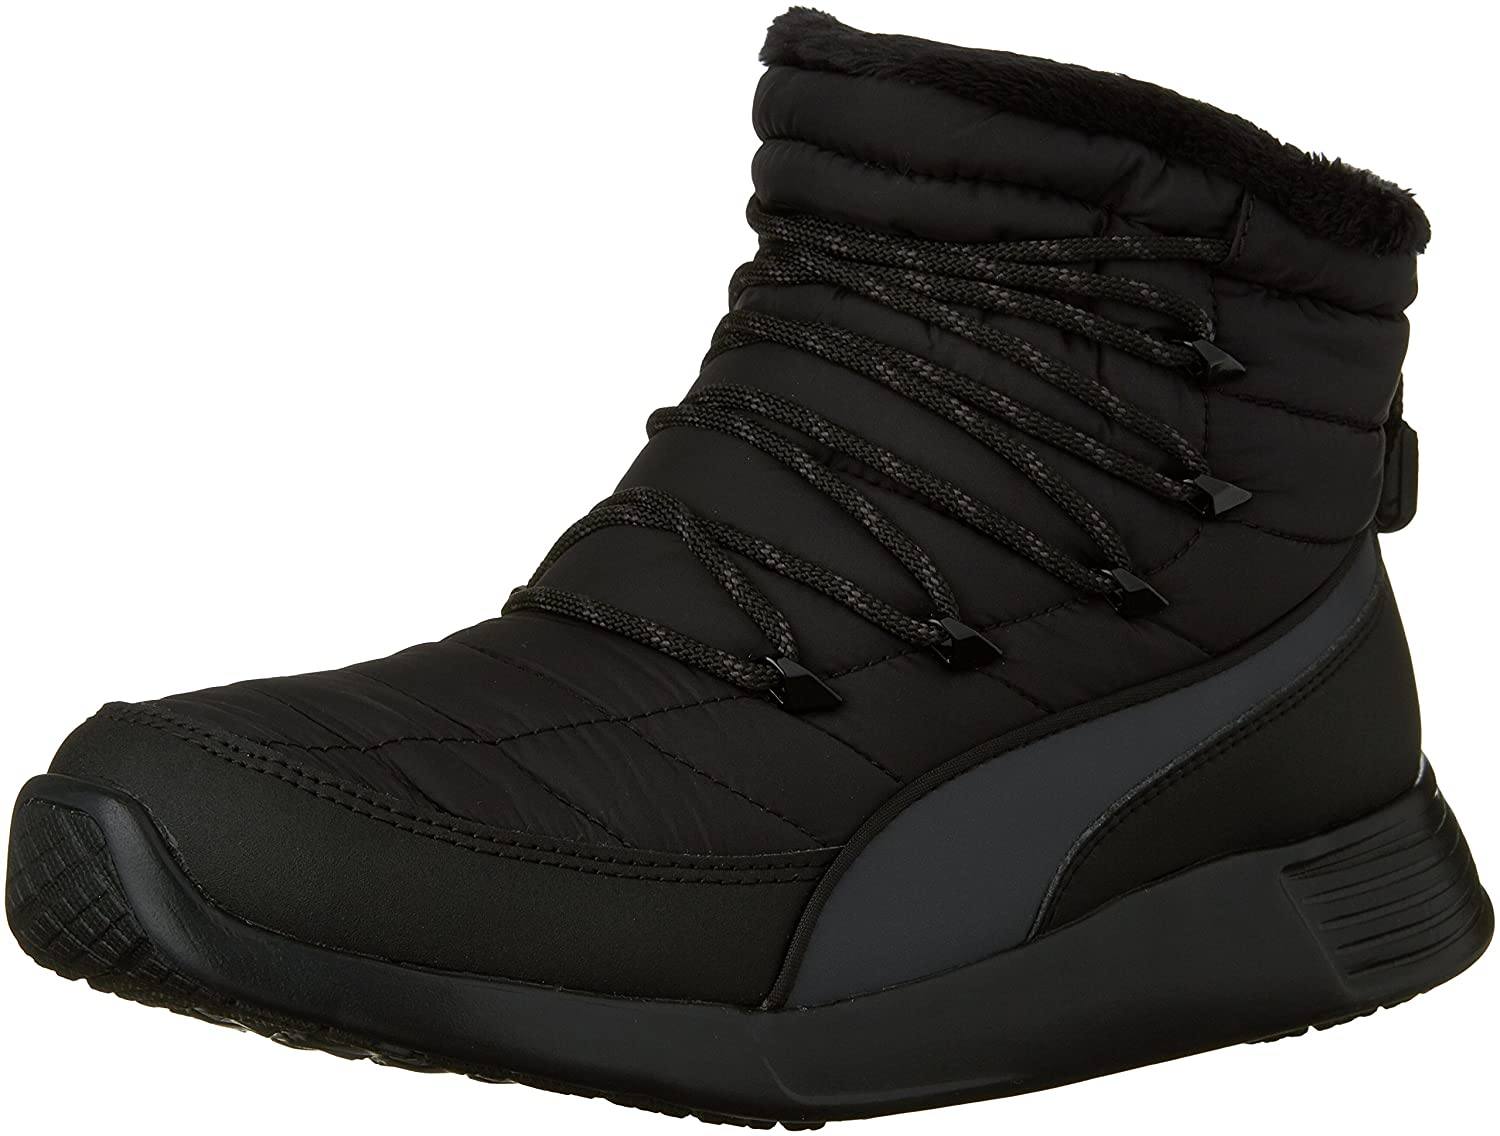 Puma M Boot St ca 5 Us Black Women's Amazon Winter 5 Shoe Running rtzx7rqw5